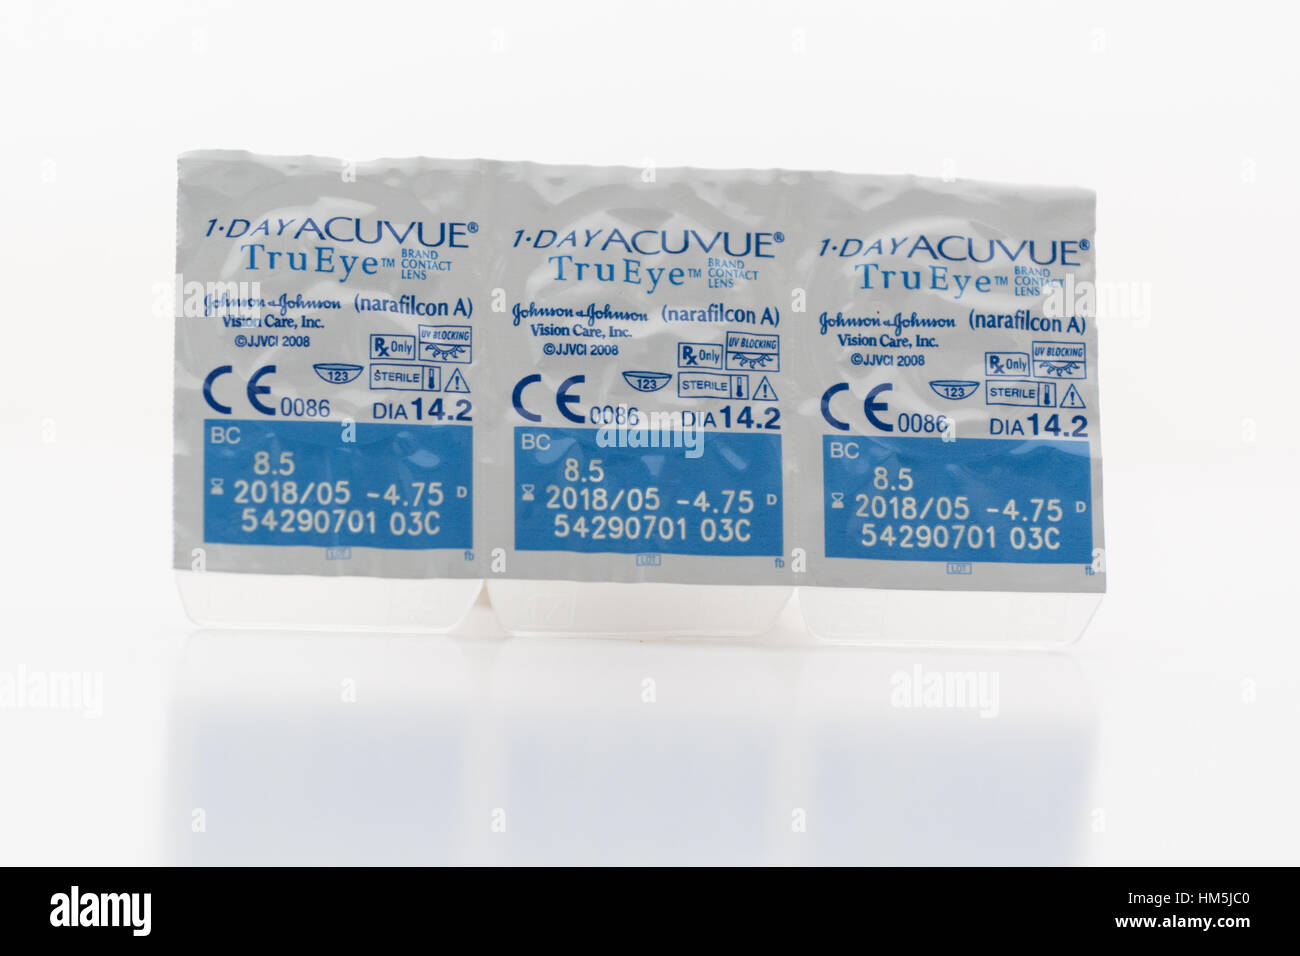 daily disposable contact lenses in packaging - 1-Day Acuvue - Stock Image